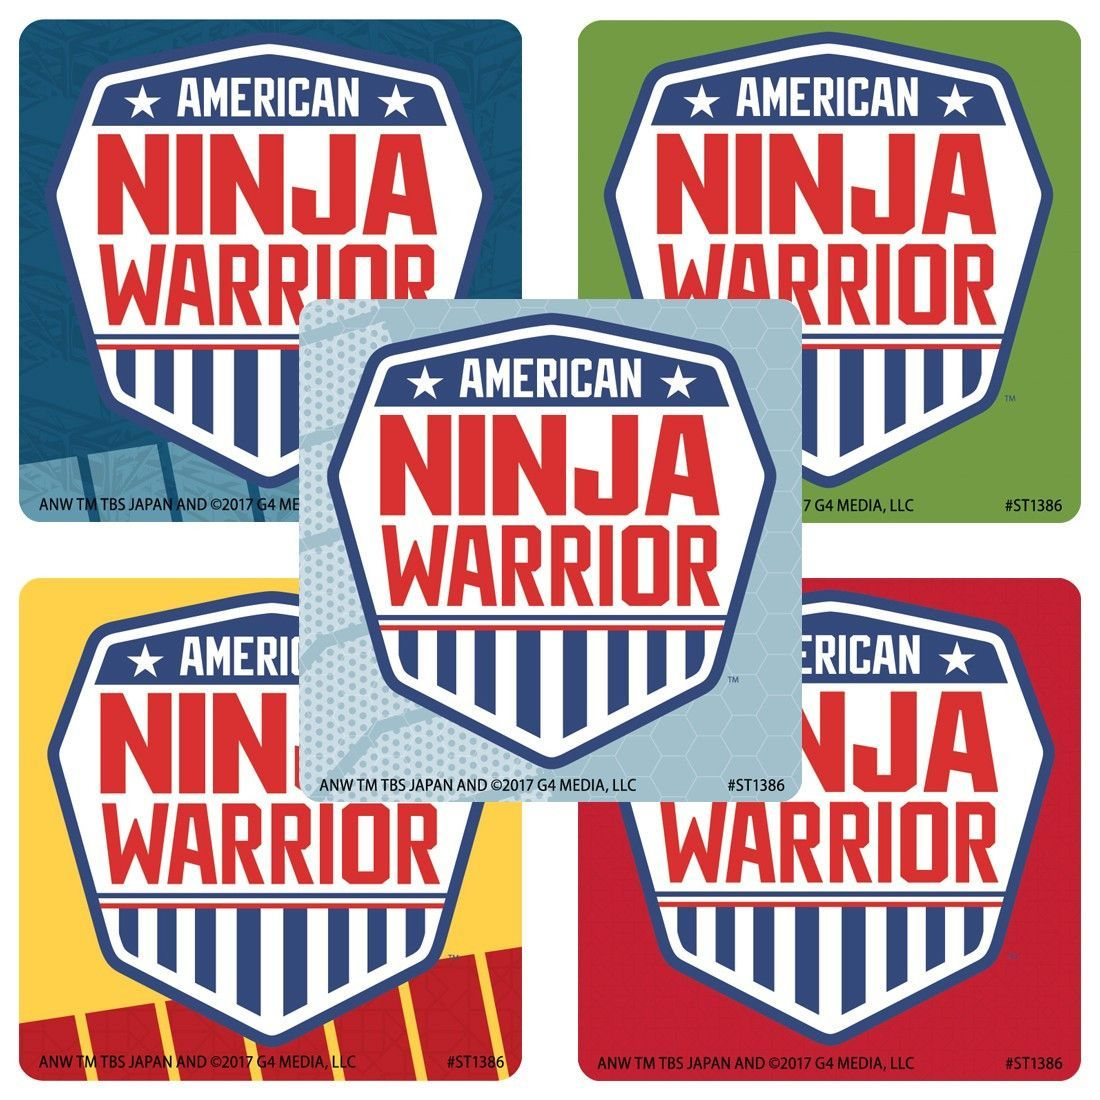 8fc739a127139e American Ninja Warrior Party Favor Stickers - 50 ct | American ninja ...